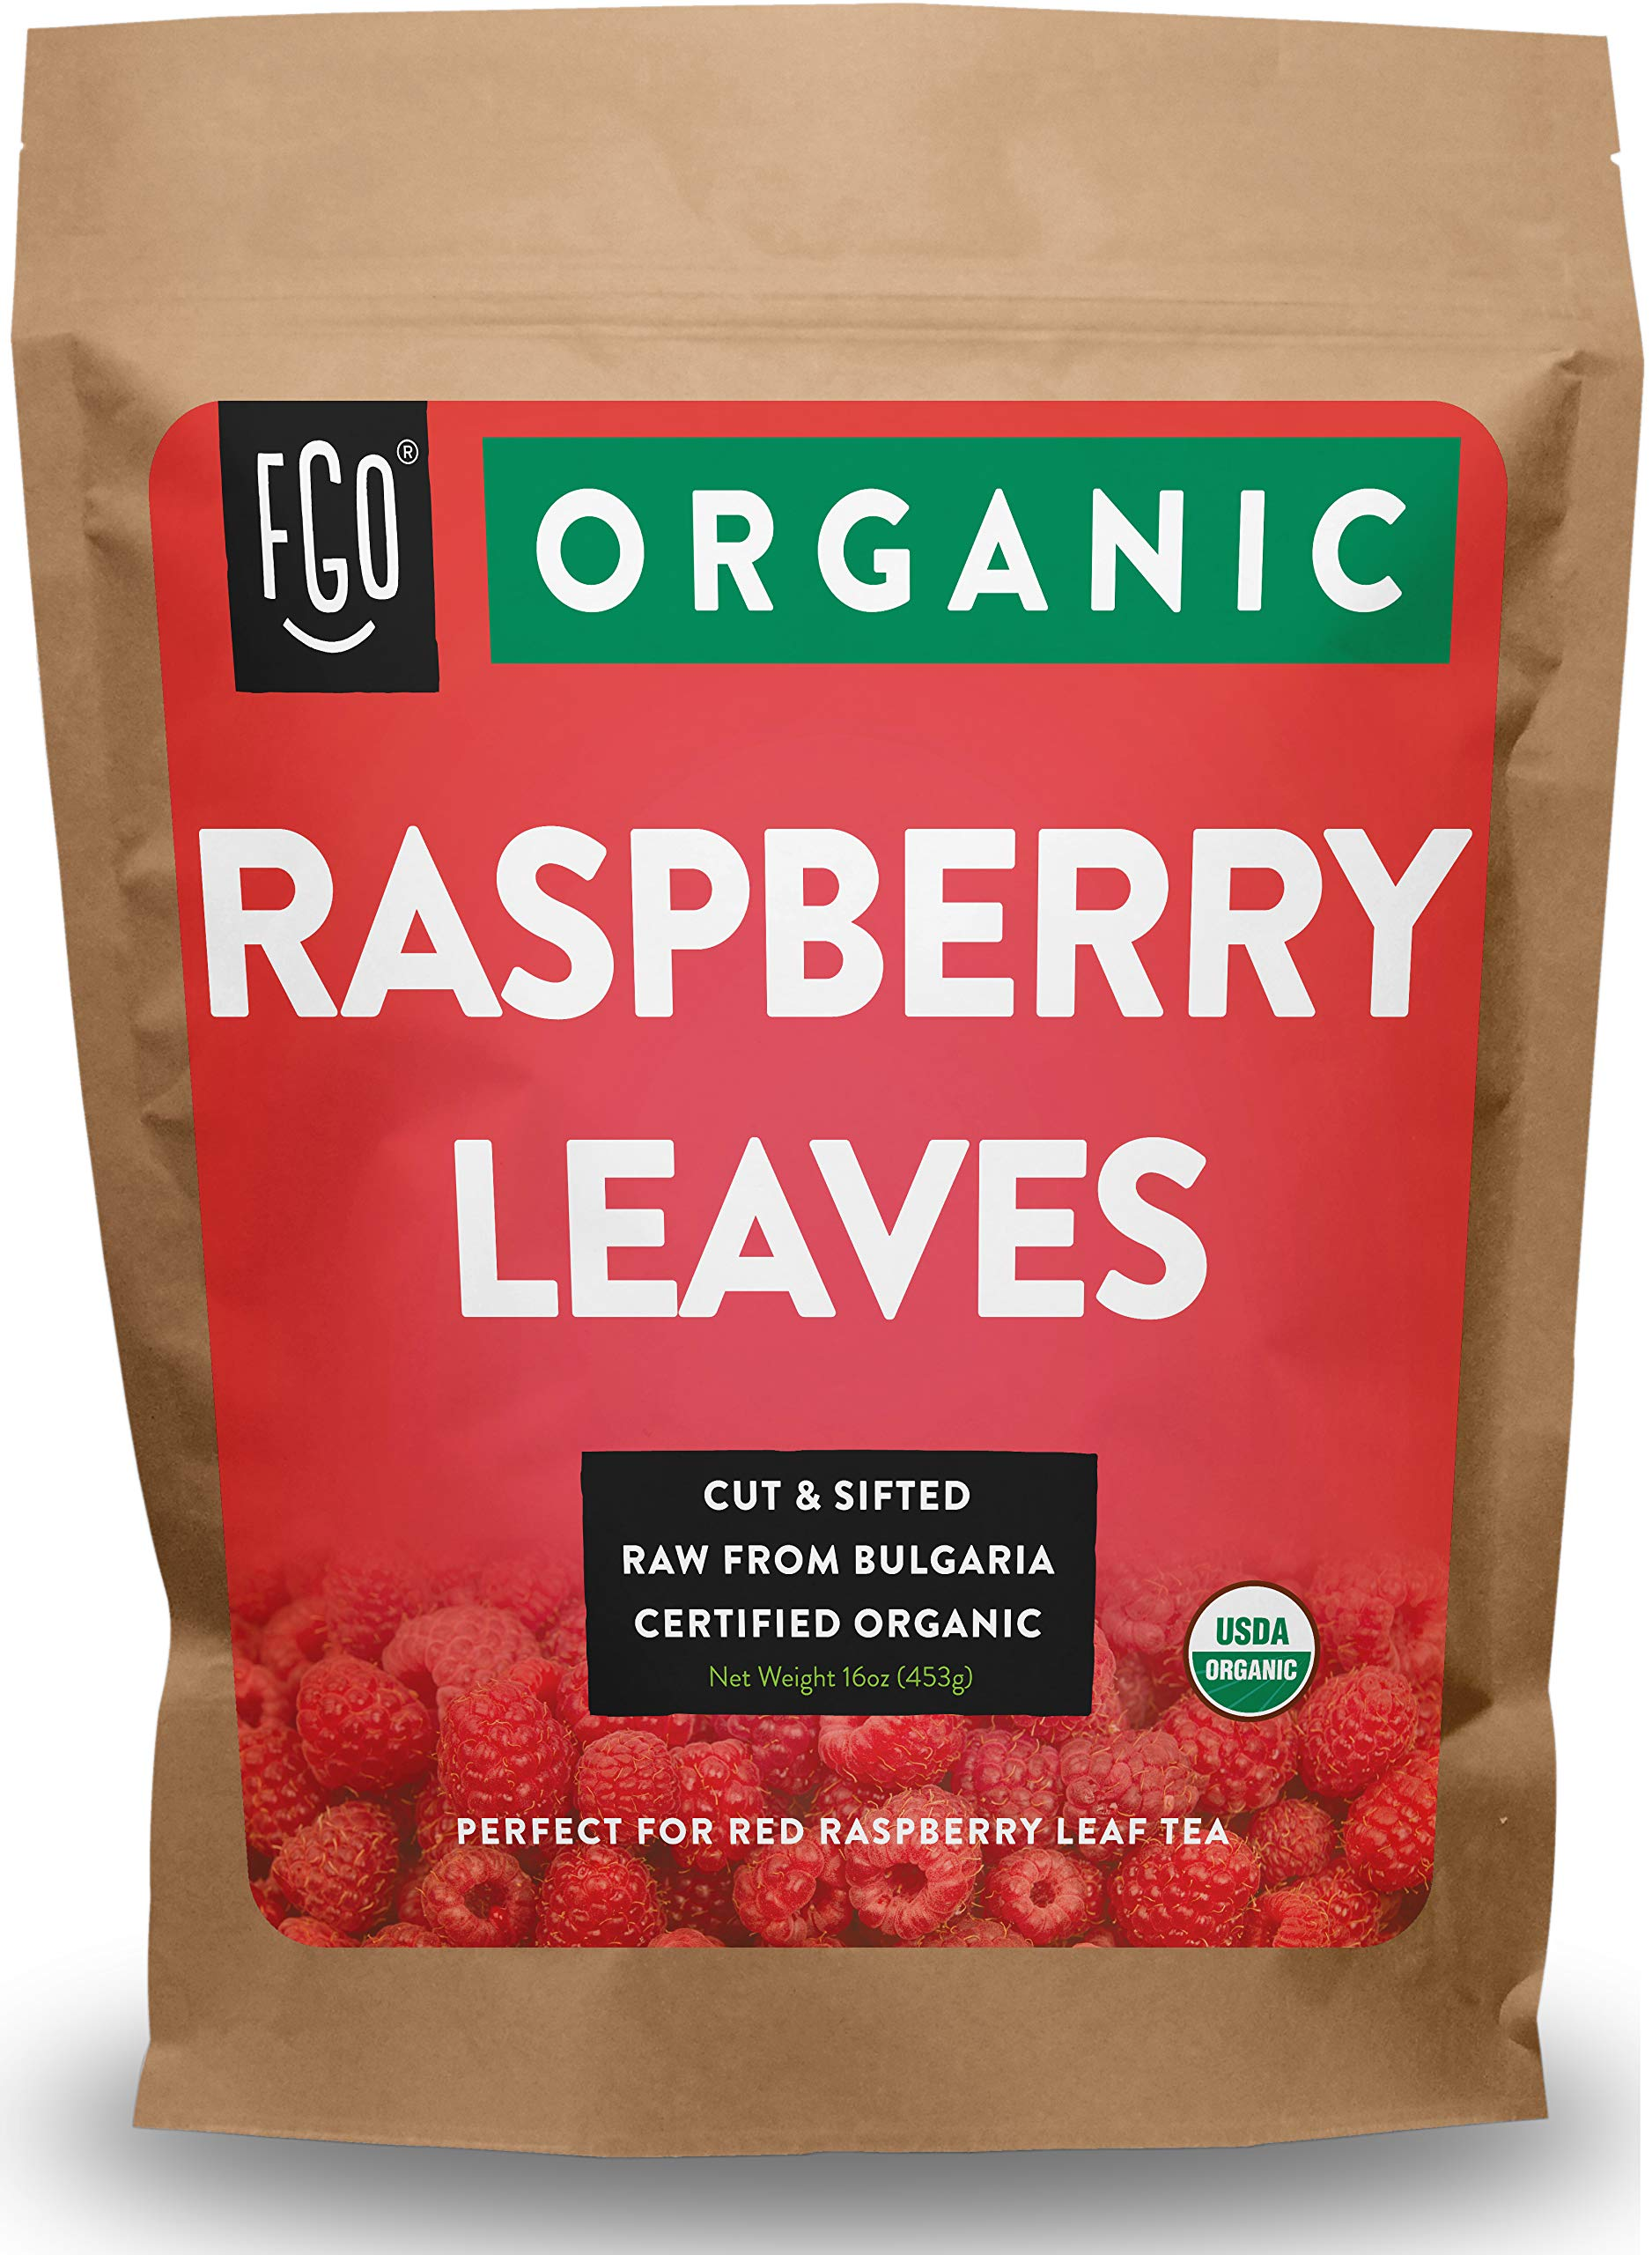 Organic Red Raspberry Leaf - Herbal Tea (200+ Cups) - Cut & Sifted Leaves - 16oz Resealable Bag (1lb) - 100% Raw From Bulgaria